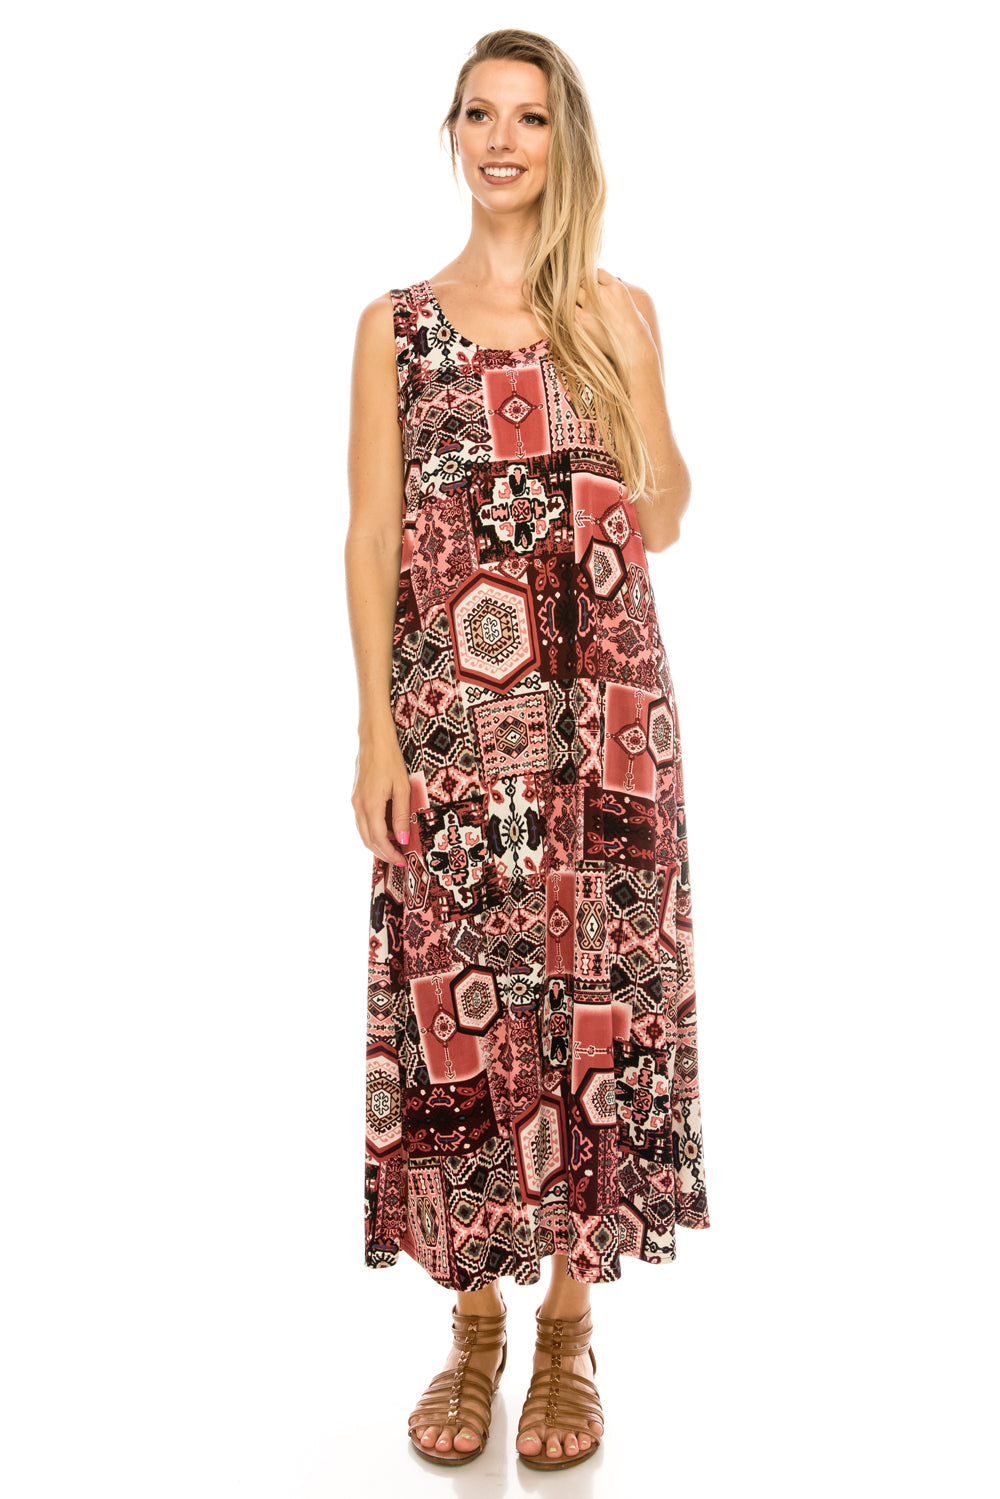 Jostar Women's Stretchy Long Tank Dress Print, 700BN-TP-W166 - Jostar Online